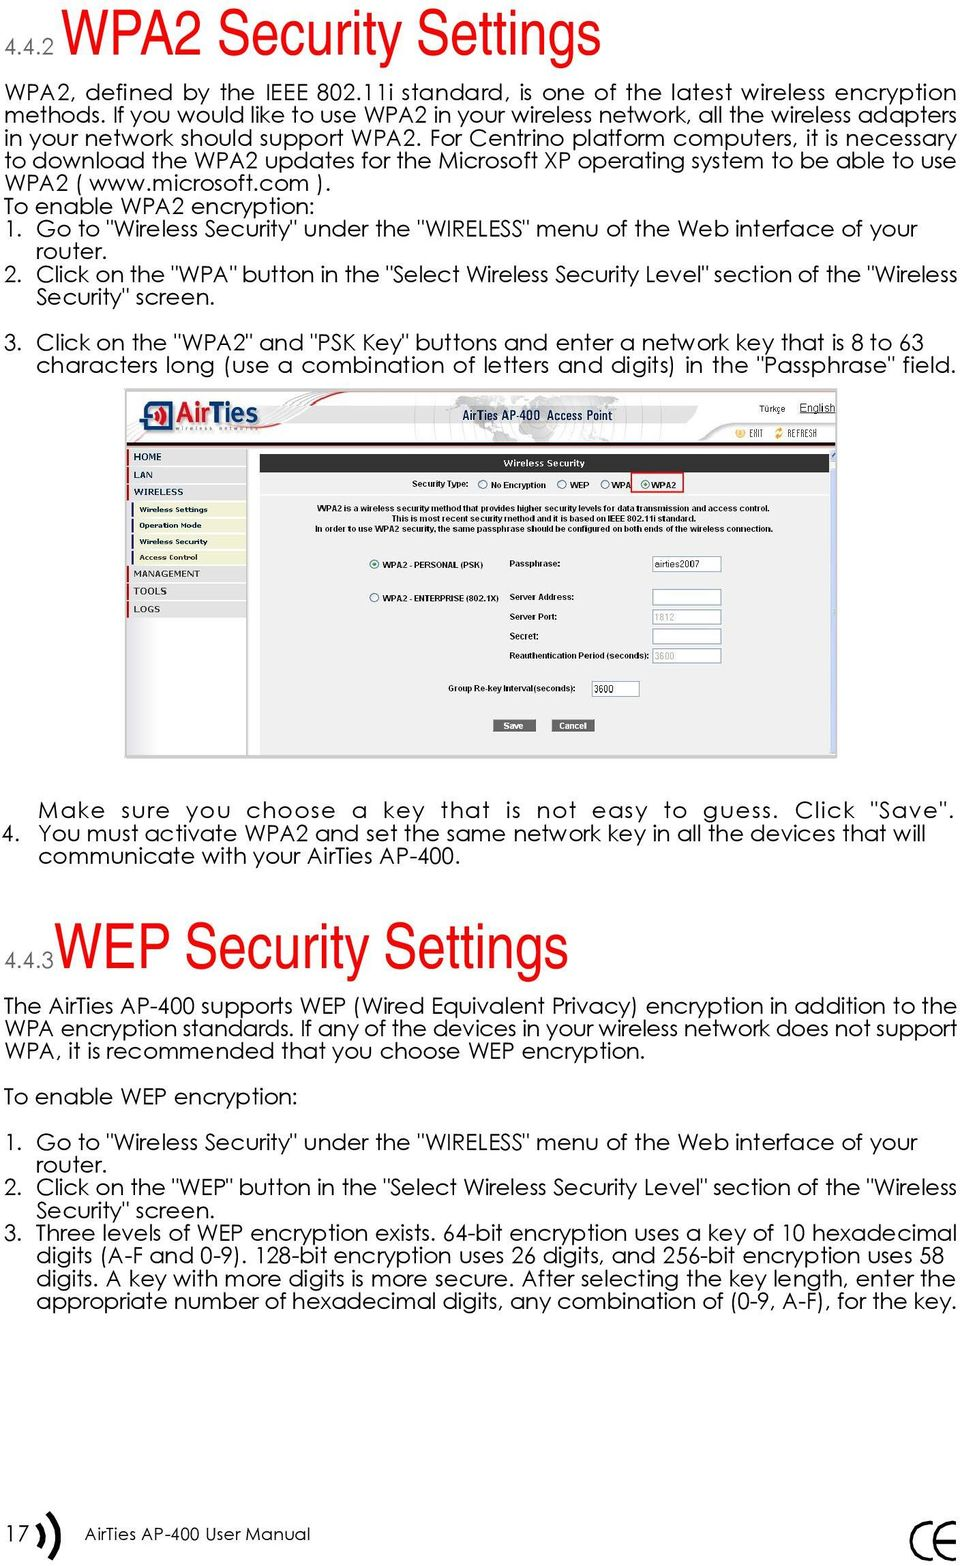 For Centrino platform computers, it is necessary to download the WPA2 updates for the Microsoft XP operating system to be able to use WPA2 ( www.microsoft.com ). To enable WPA2 encryption: 1.